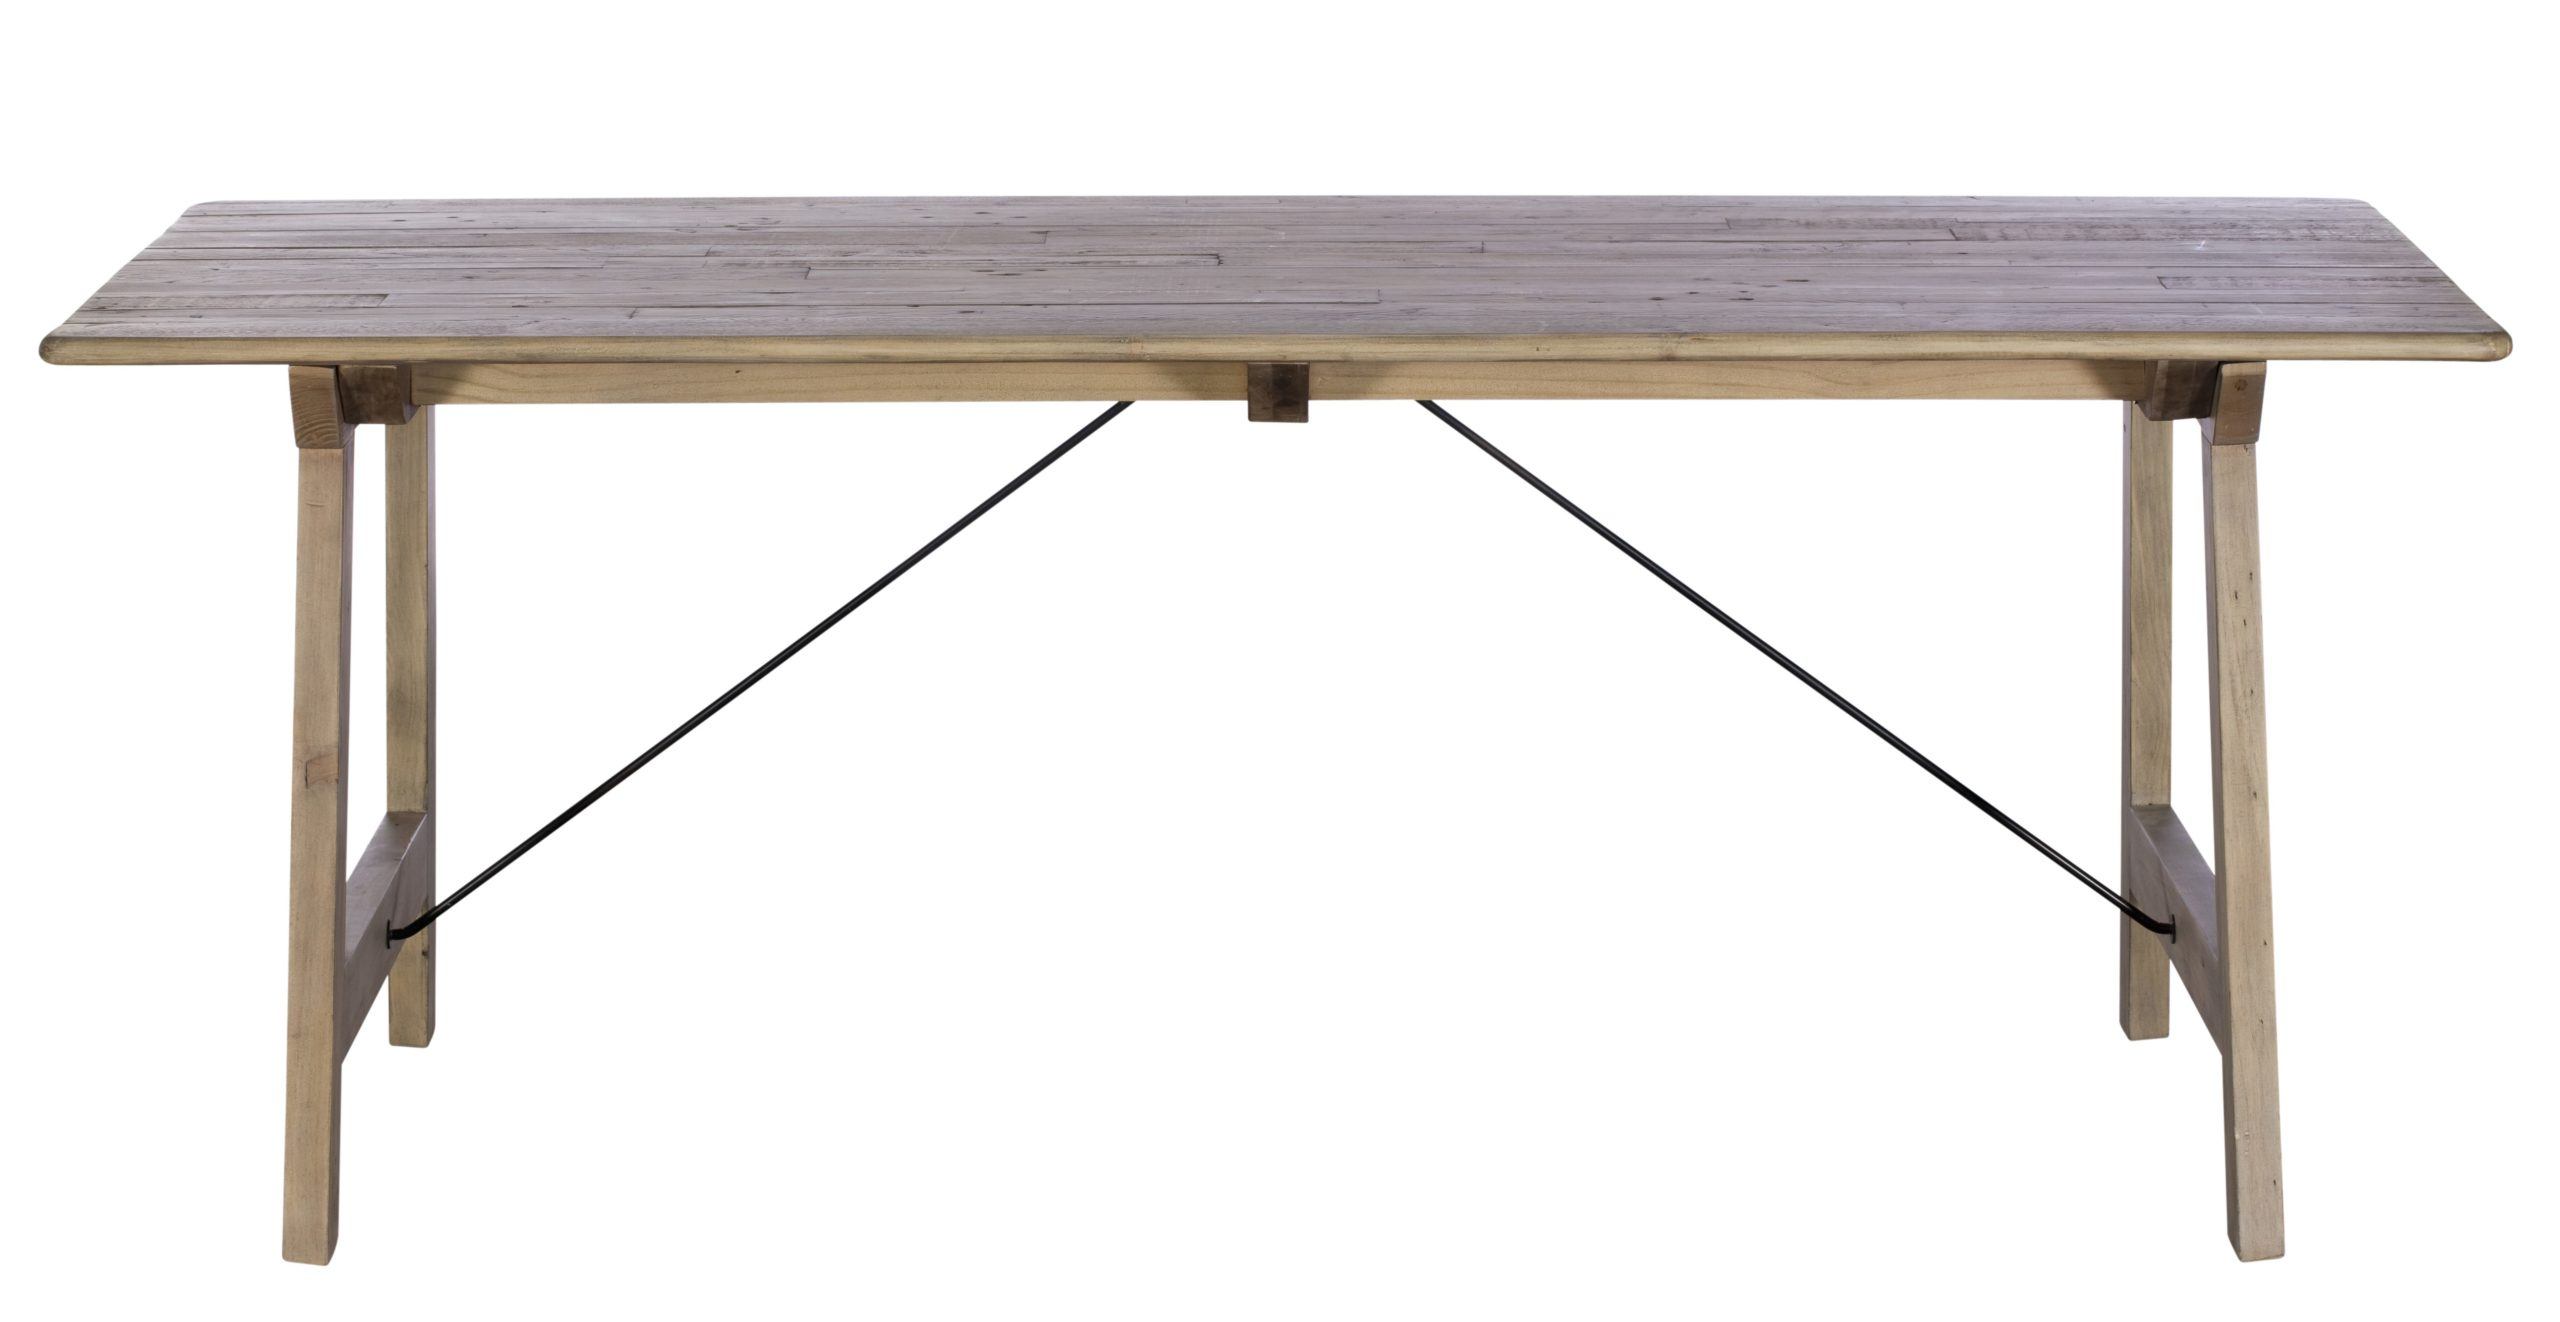 Verona Dining Table VT04 20 e1573077869230 scaled